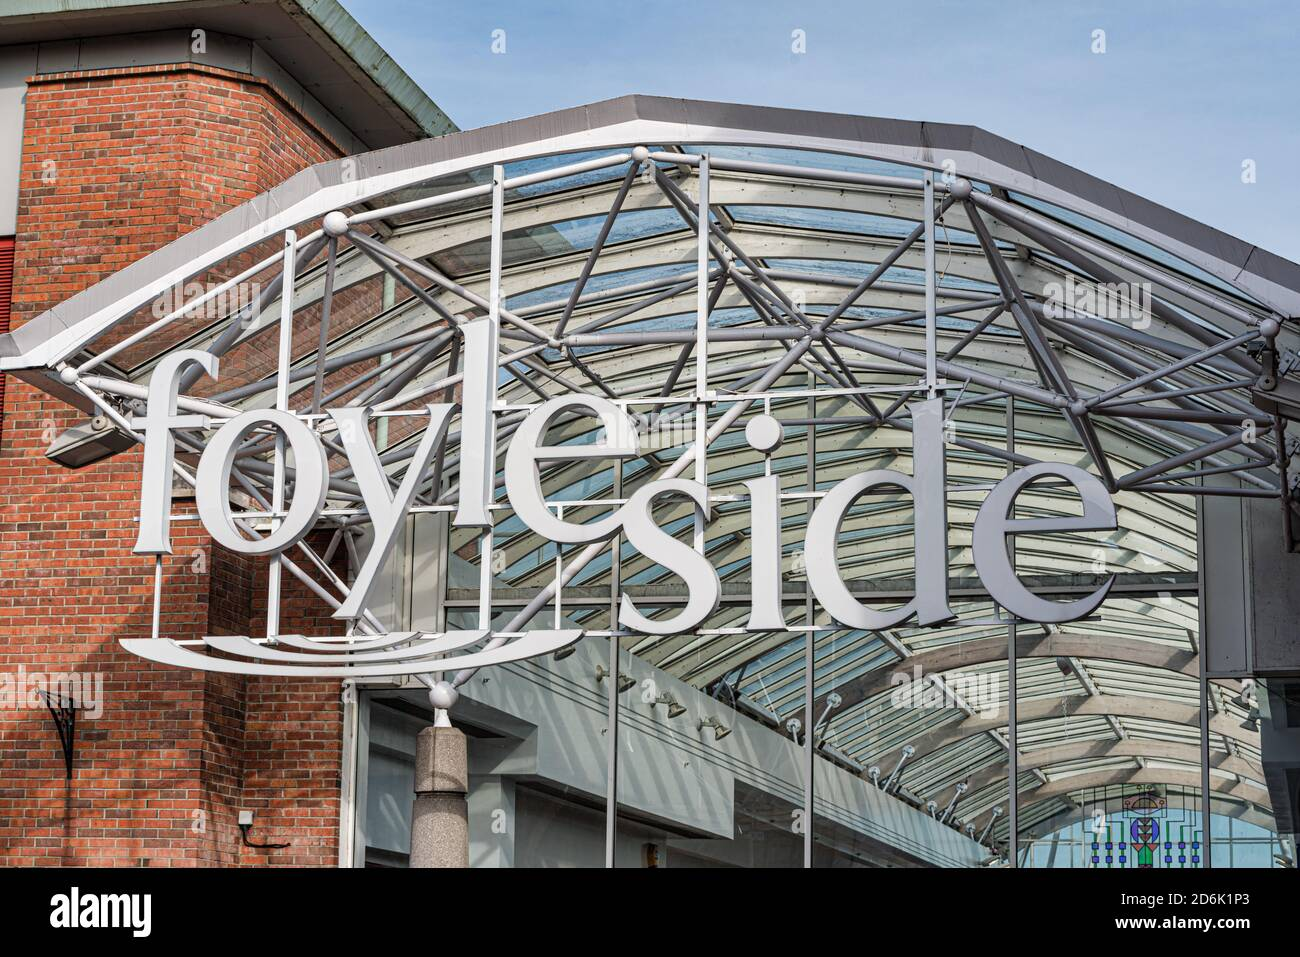 Derry, Northern Ireland- Sept 27, 2020: The Entrance to Foylside shopping centre in Derry. Stock Photo